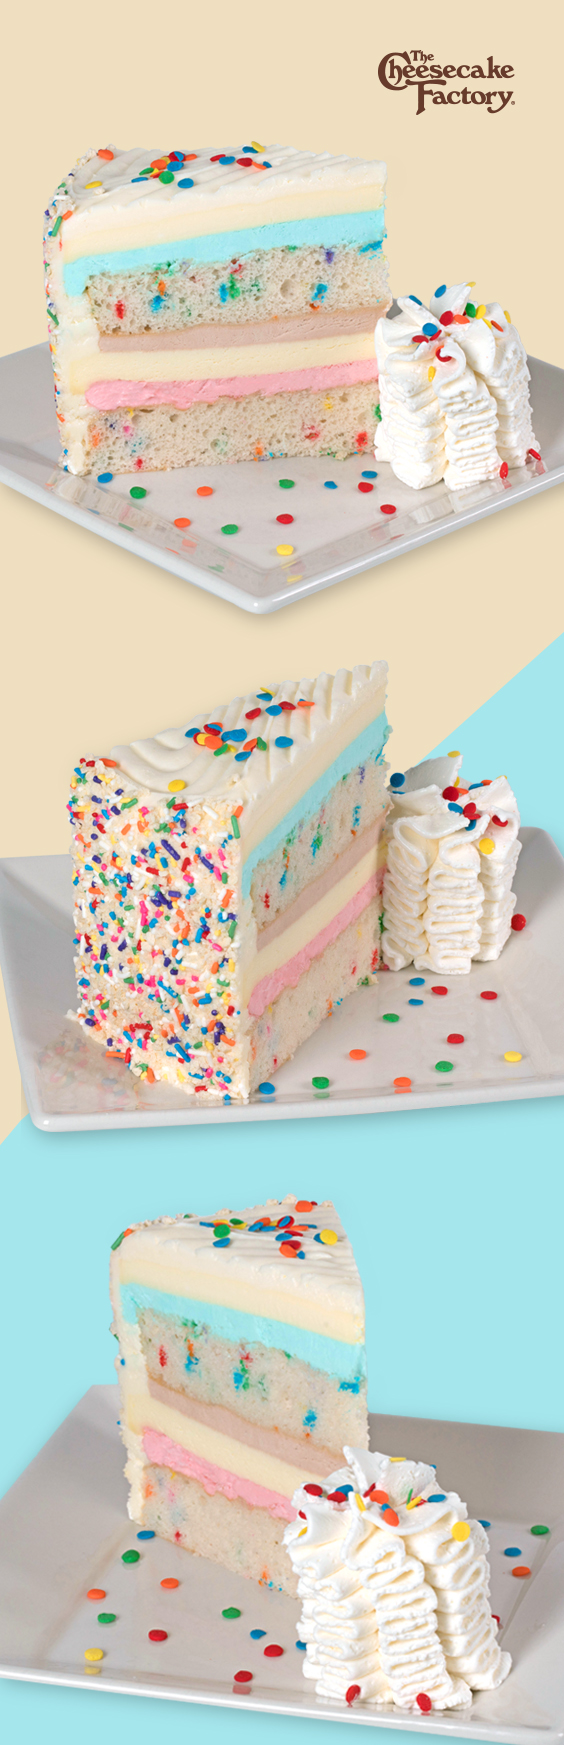 Sensational The New Celebration Cheesecake Layers Of Vanilla Cake Cheesecake Funny Birthday Cards Online Barepcheapnameinfo